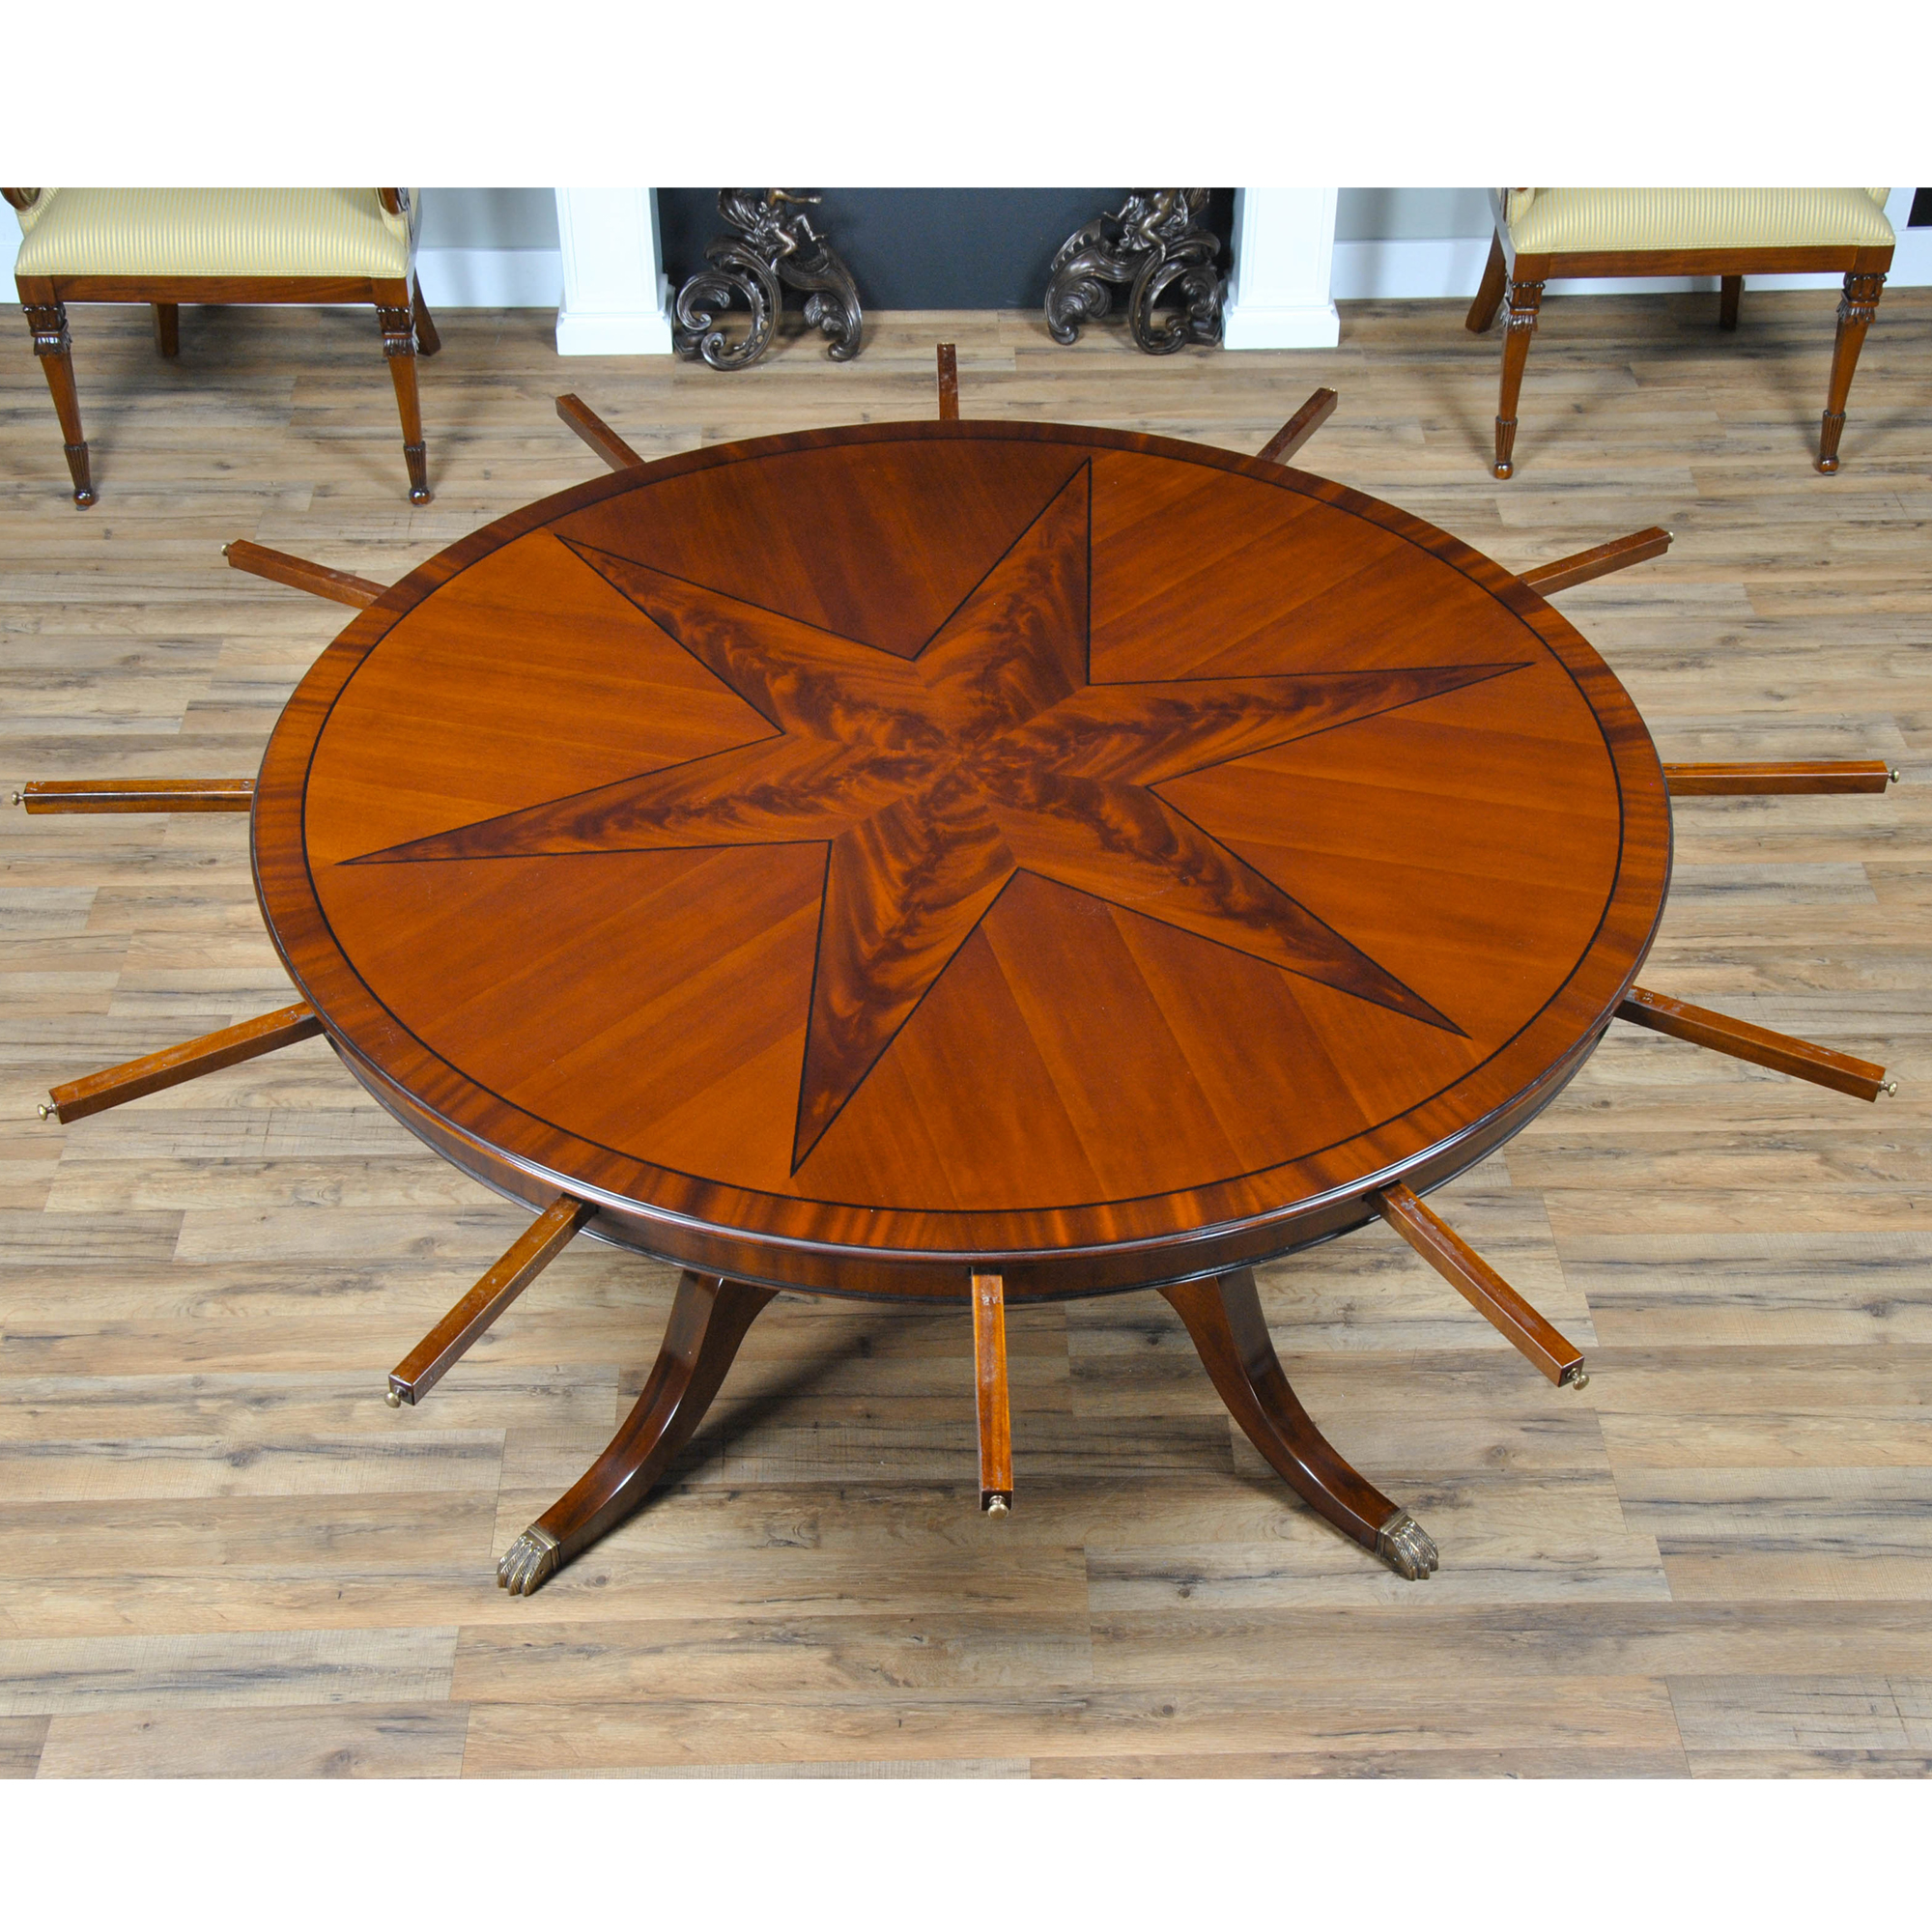 Star Perimeter Dining Table NDRT046